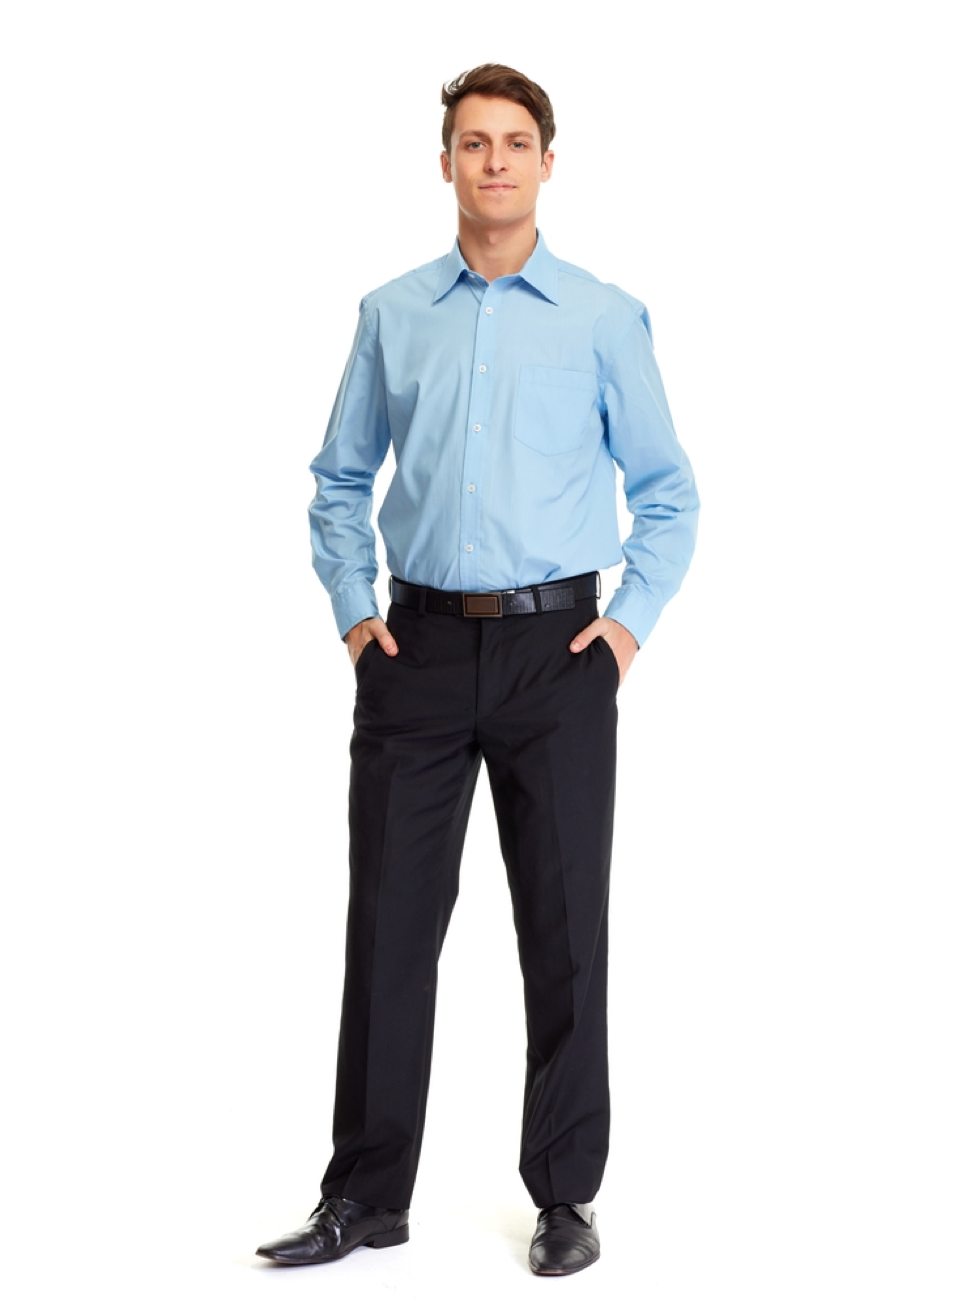 business casual for young men photo - 1